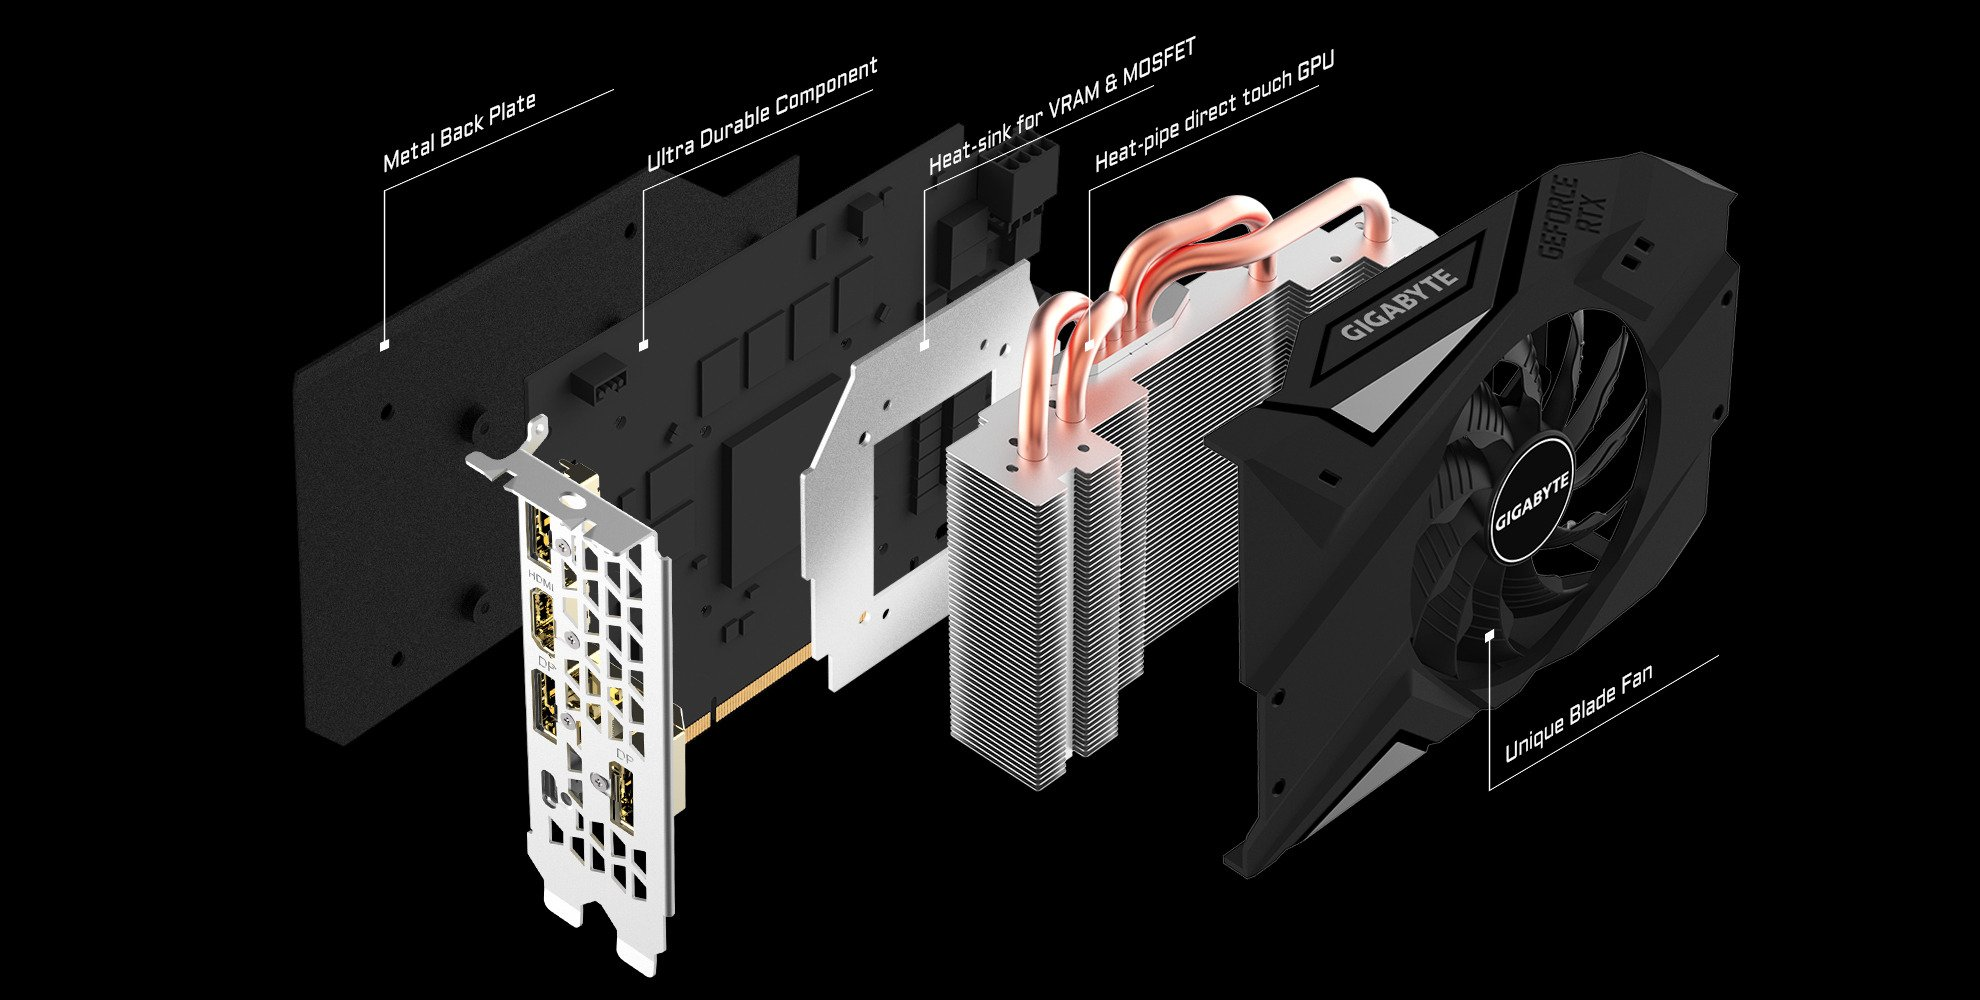 Look inside Heat Pipe System of an open air cooled GPU